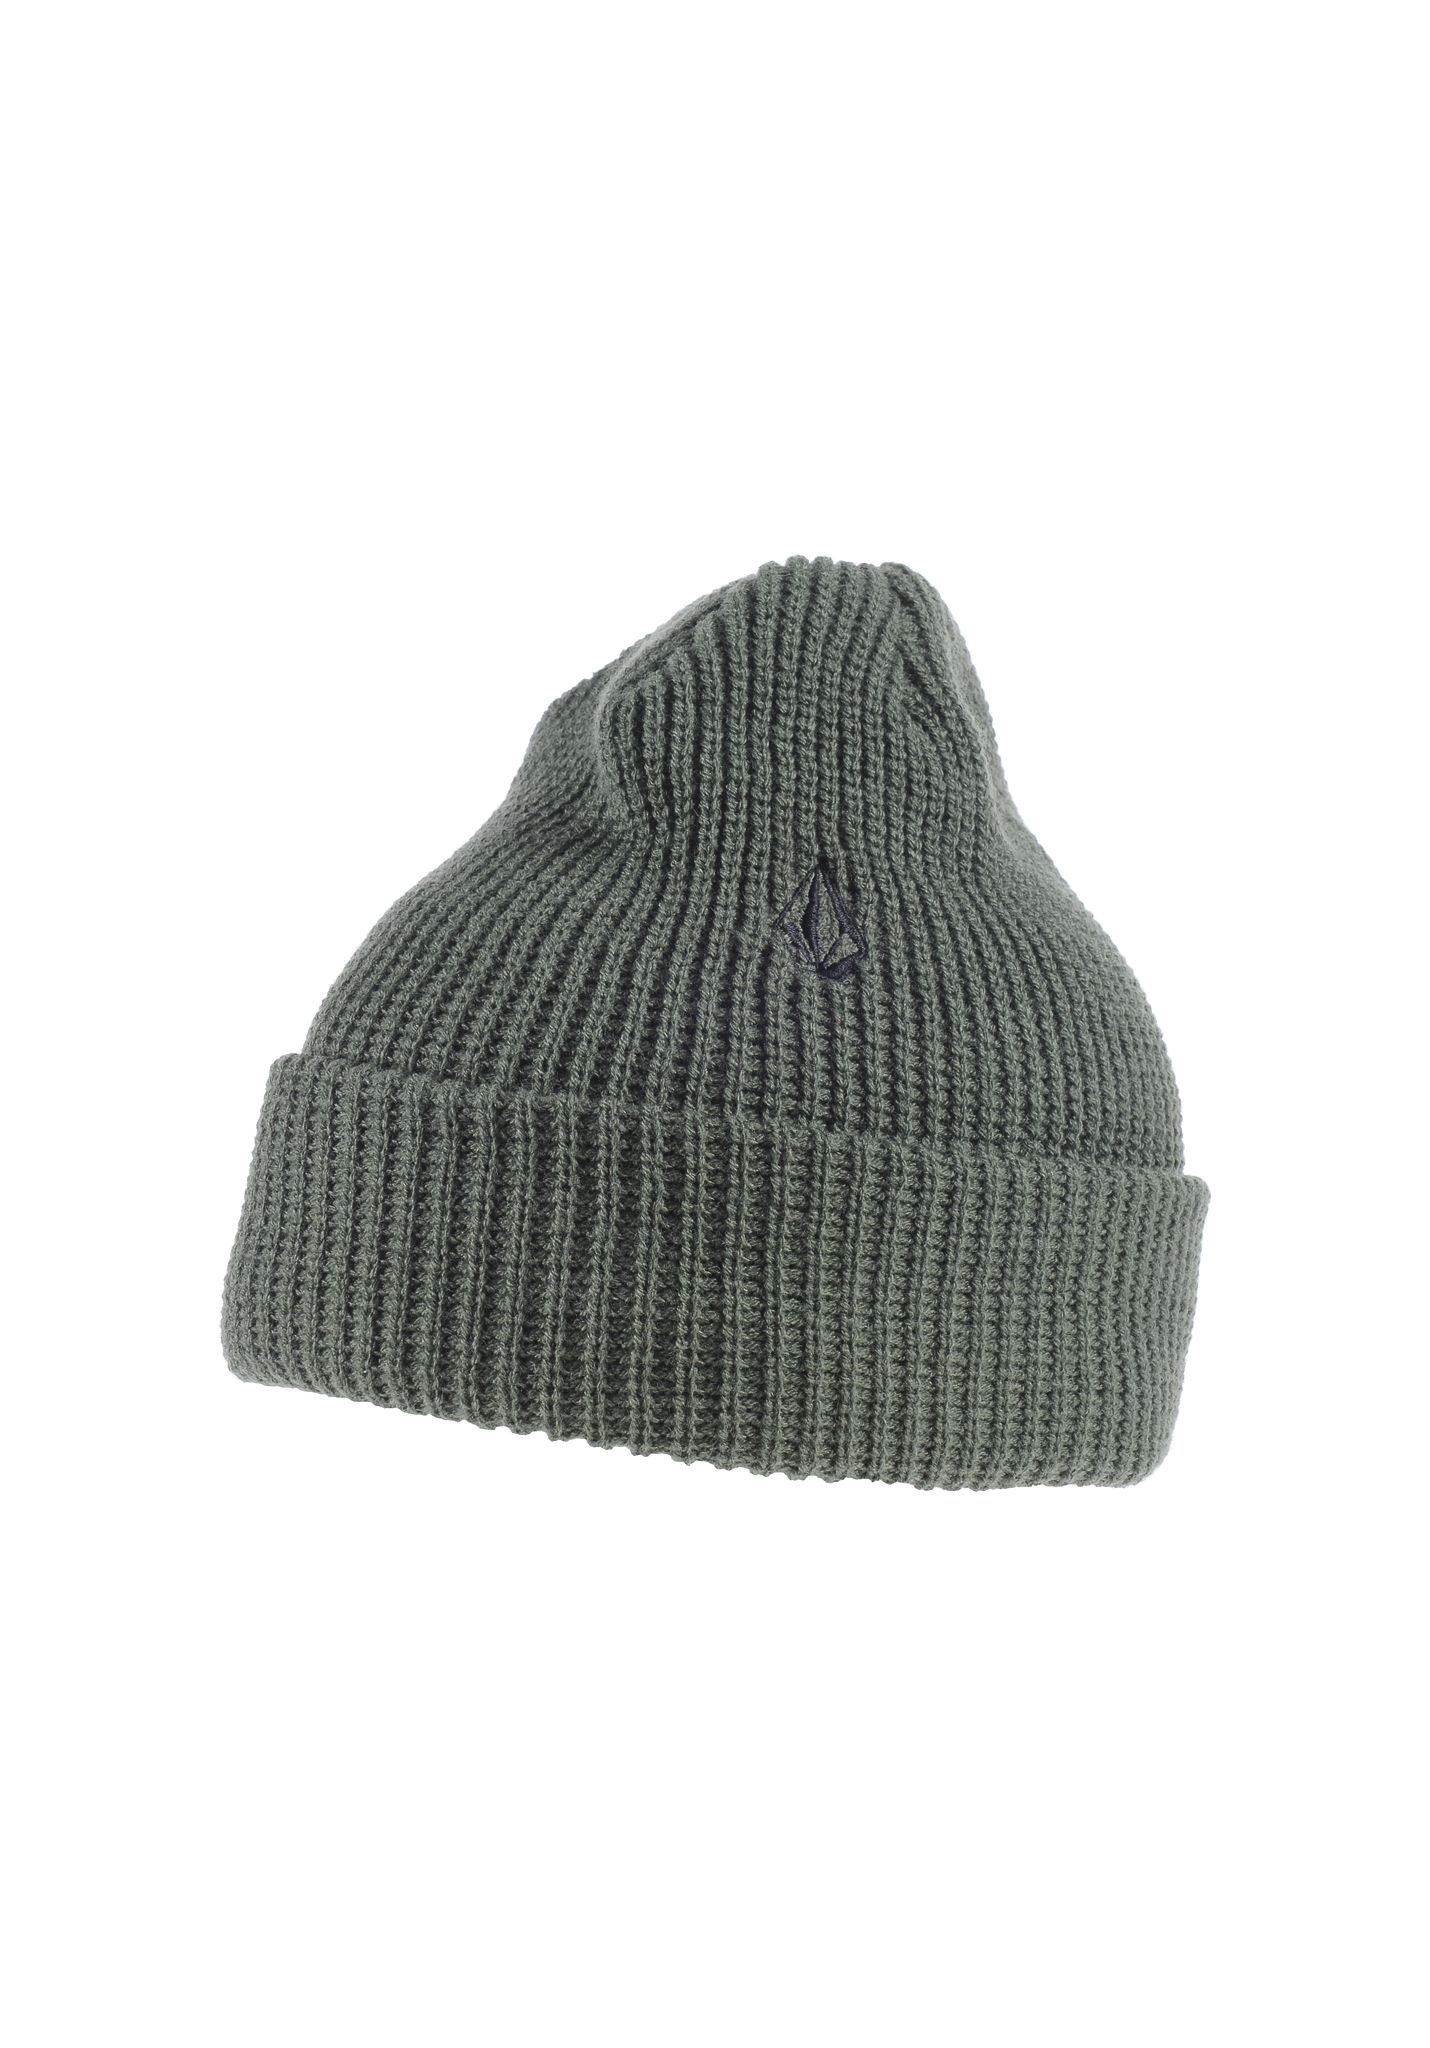 Volcom Full Stone Cuff - Beanie for Men - Green - Planet Sports 67fe66062454